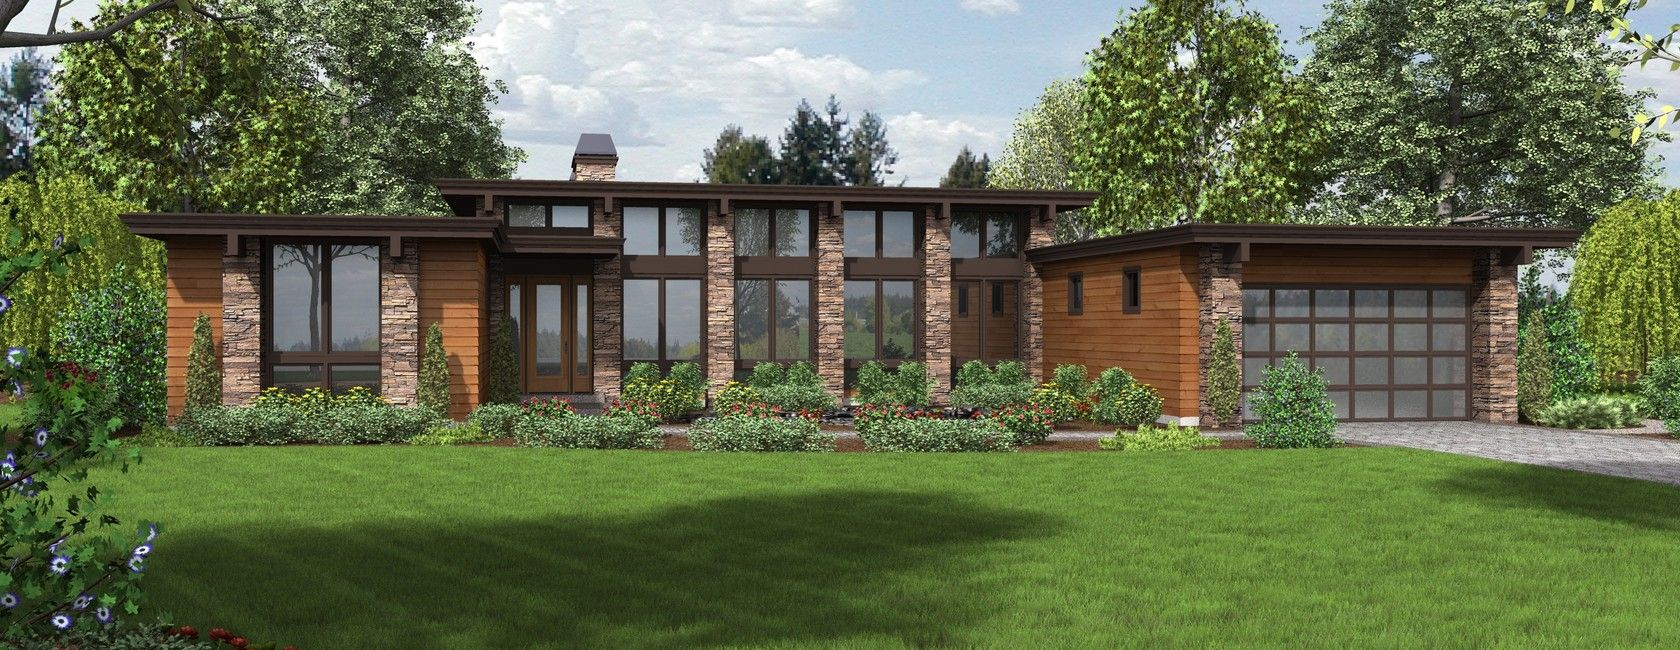 H Shaped House Plan Modern Style House Plans Ranch House Plans Contemporary House Plans